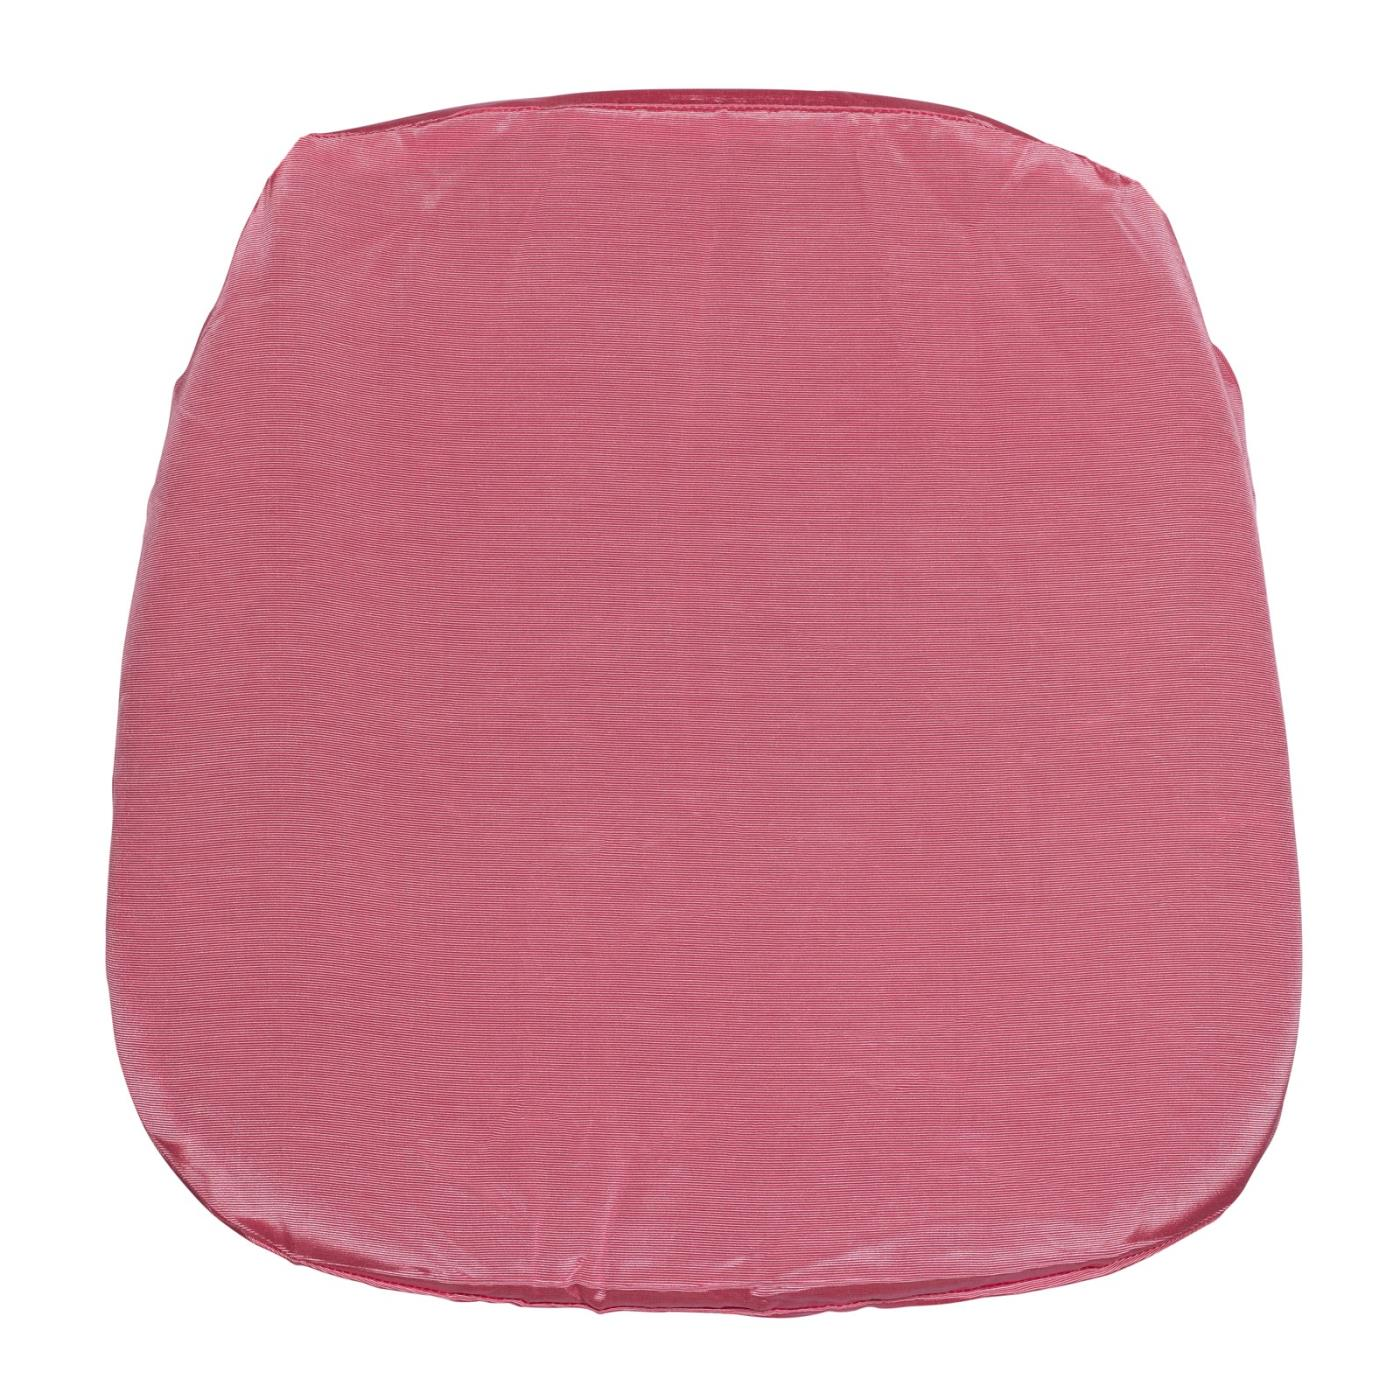 Bengaline Seat Cushion - Bubble Gum